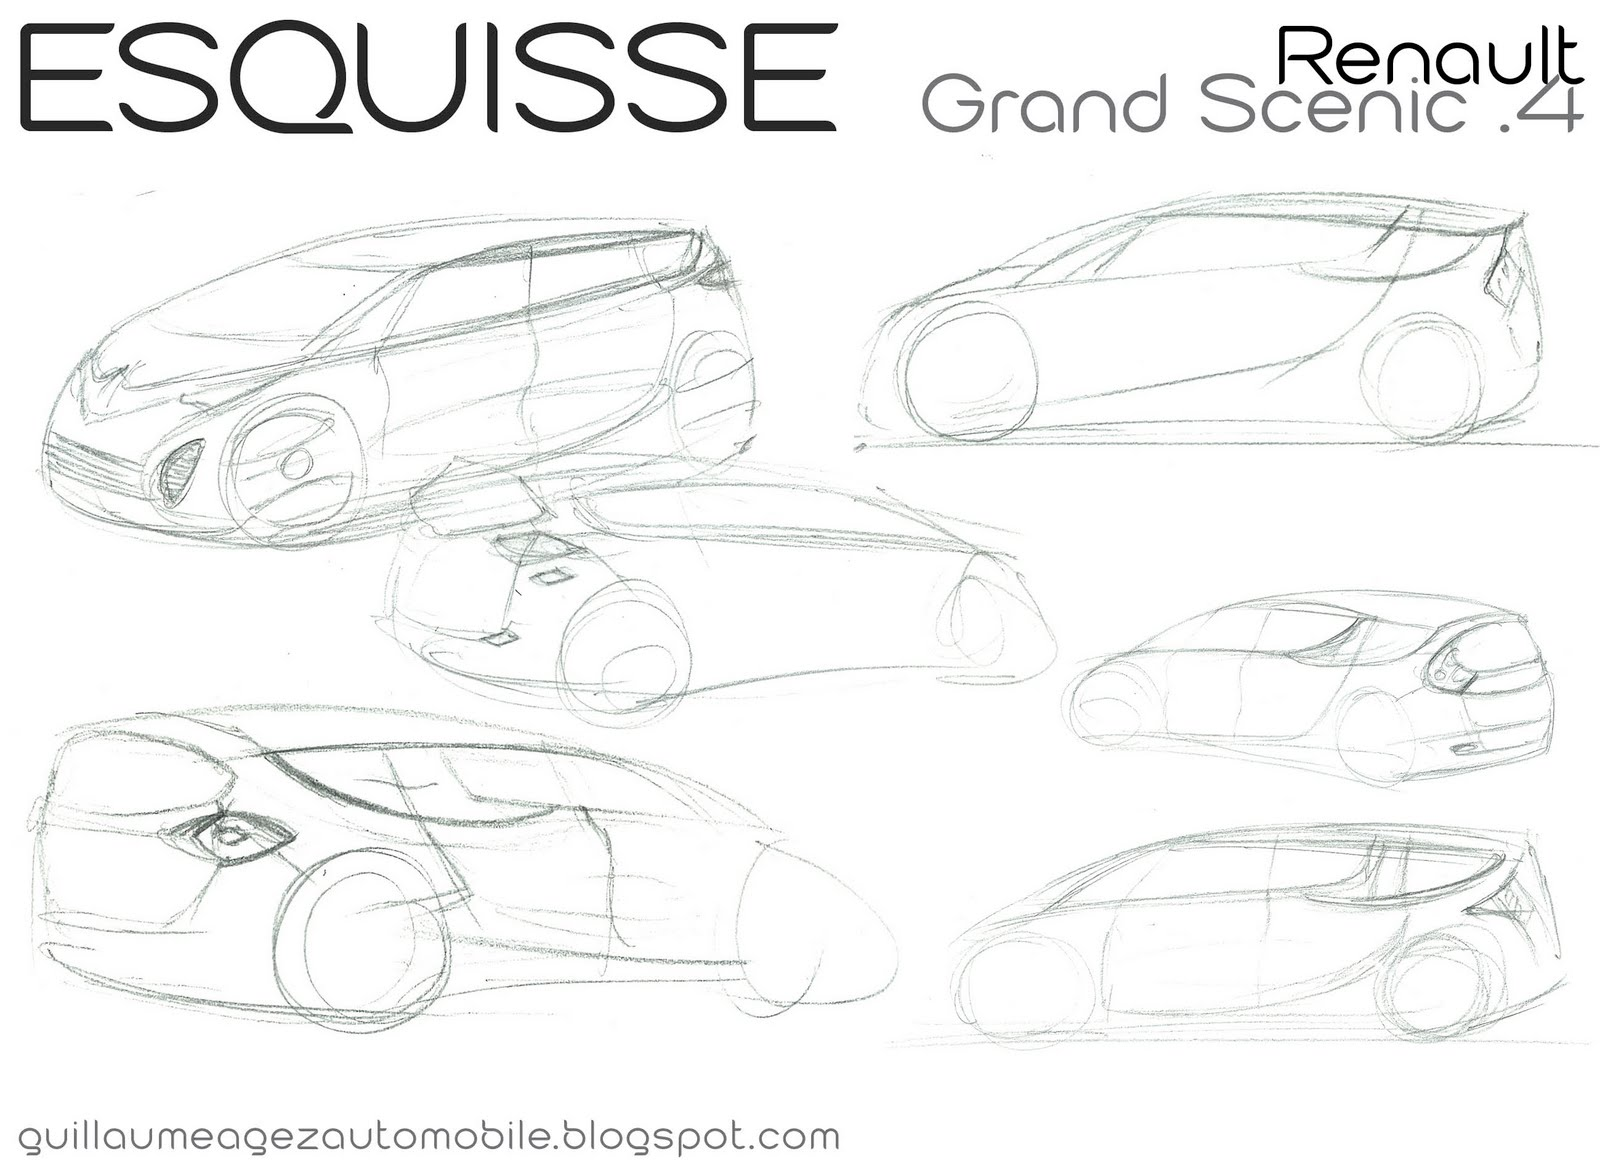 Guillaume AGEZ Automobile: Esquisse : Renault Grand Scénic 4